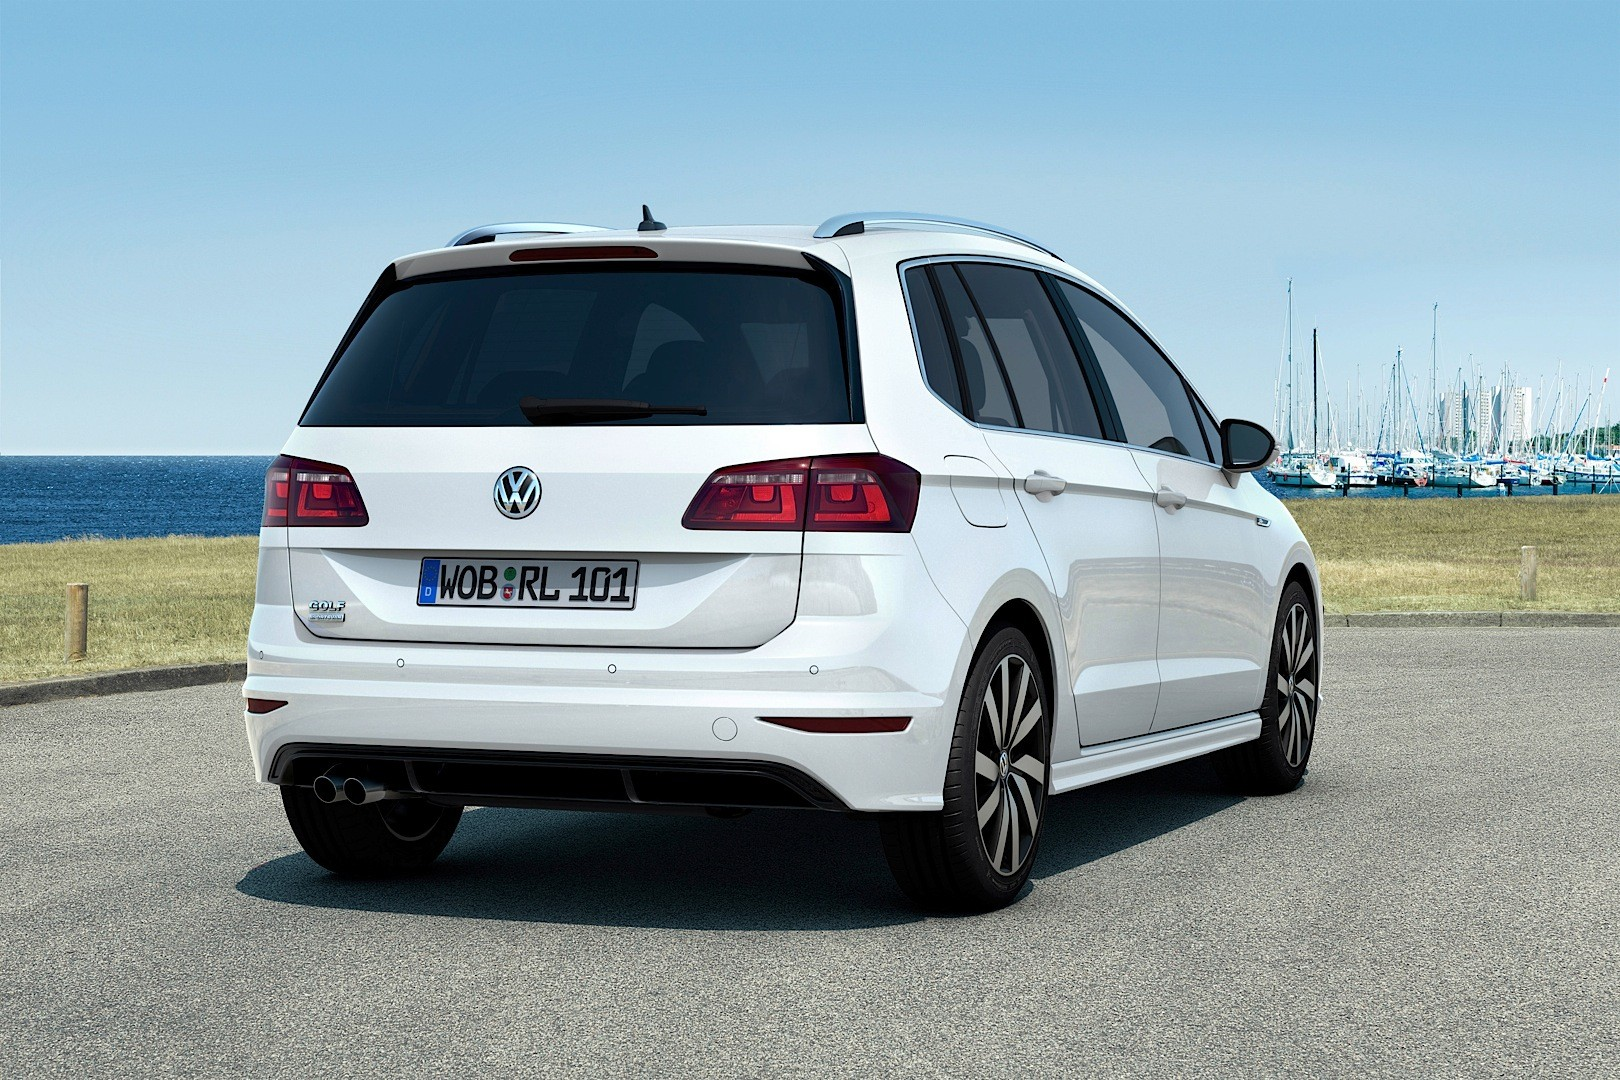 Volskwagen Golf Sportsvan Gets R-Line Package for the Exterior and Interior - autoevolution